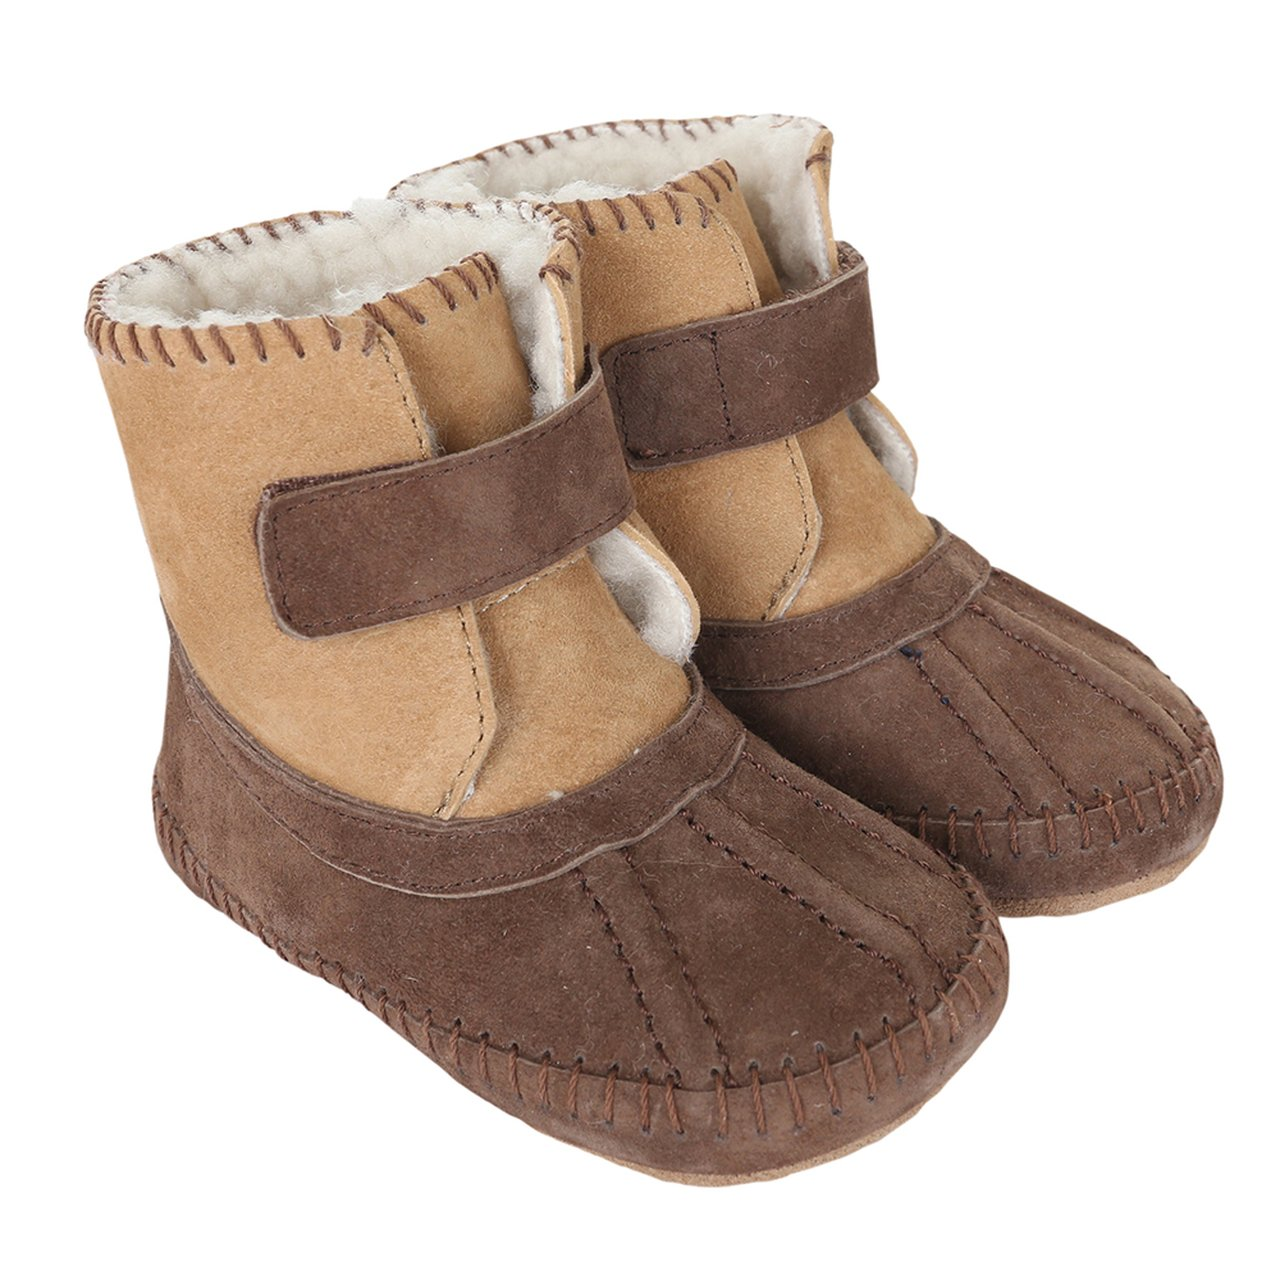 Robeez Galway Cozy Bootie Soft Sole / Brown - boys